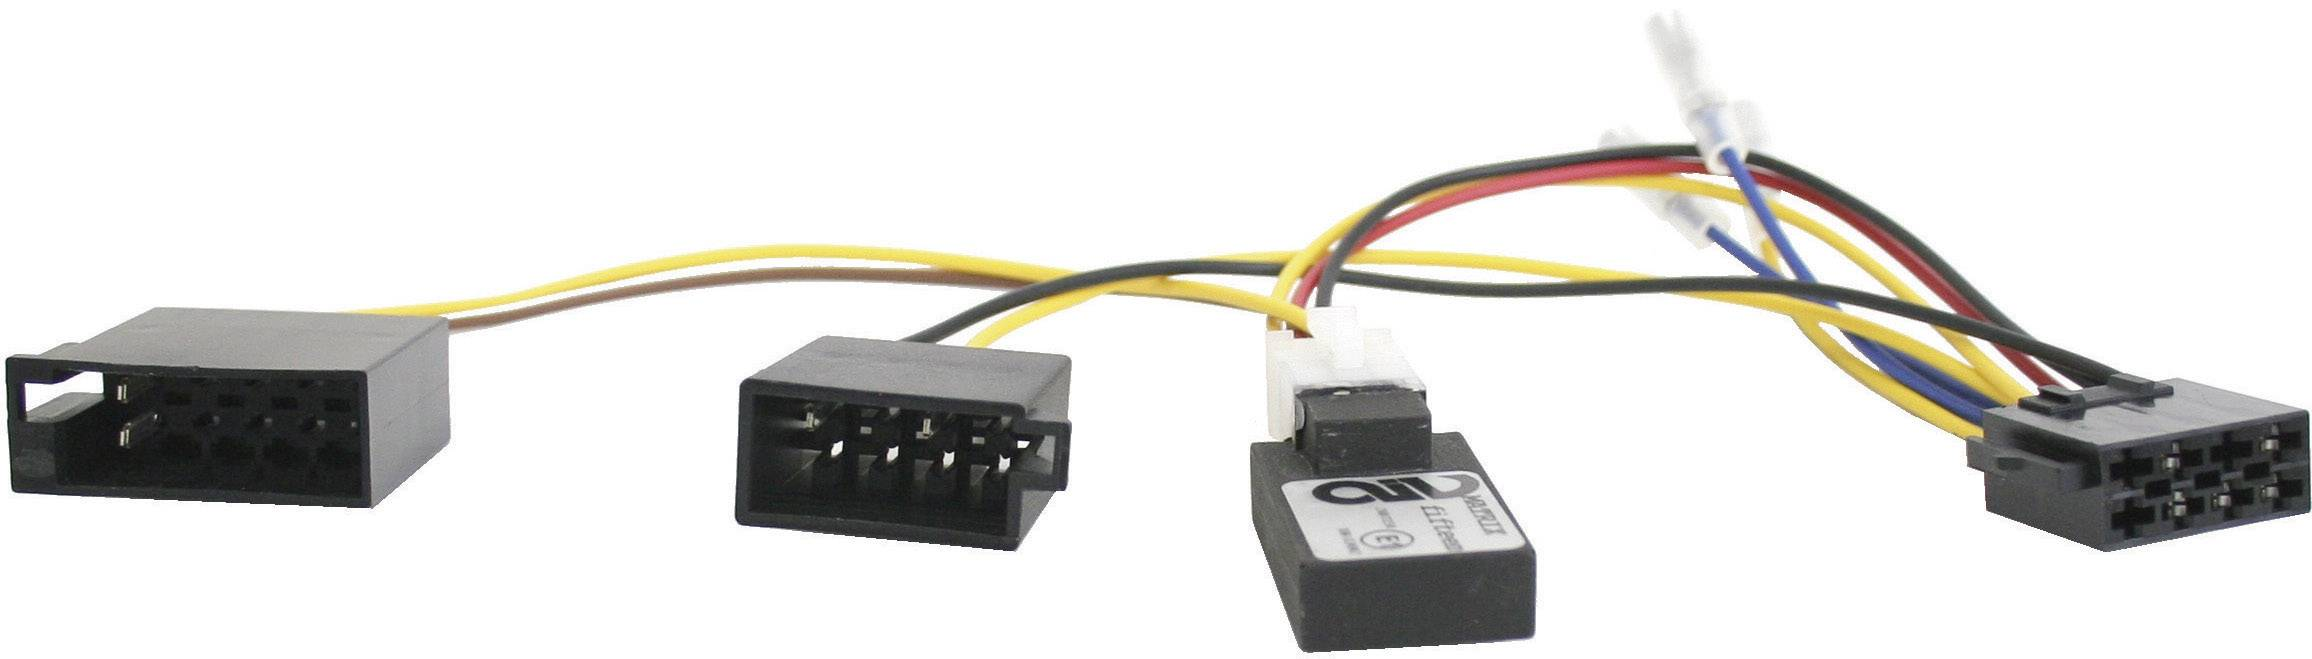 ISO adaptér pro modely Mercedes C, CLK od 06.04, E (211) s Audio 10 CanBus